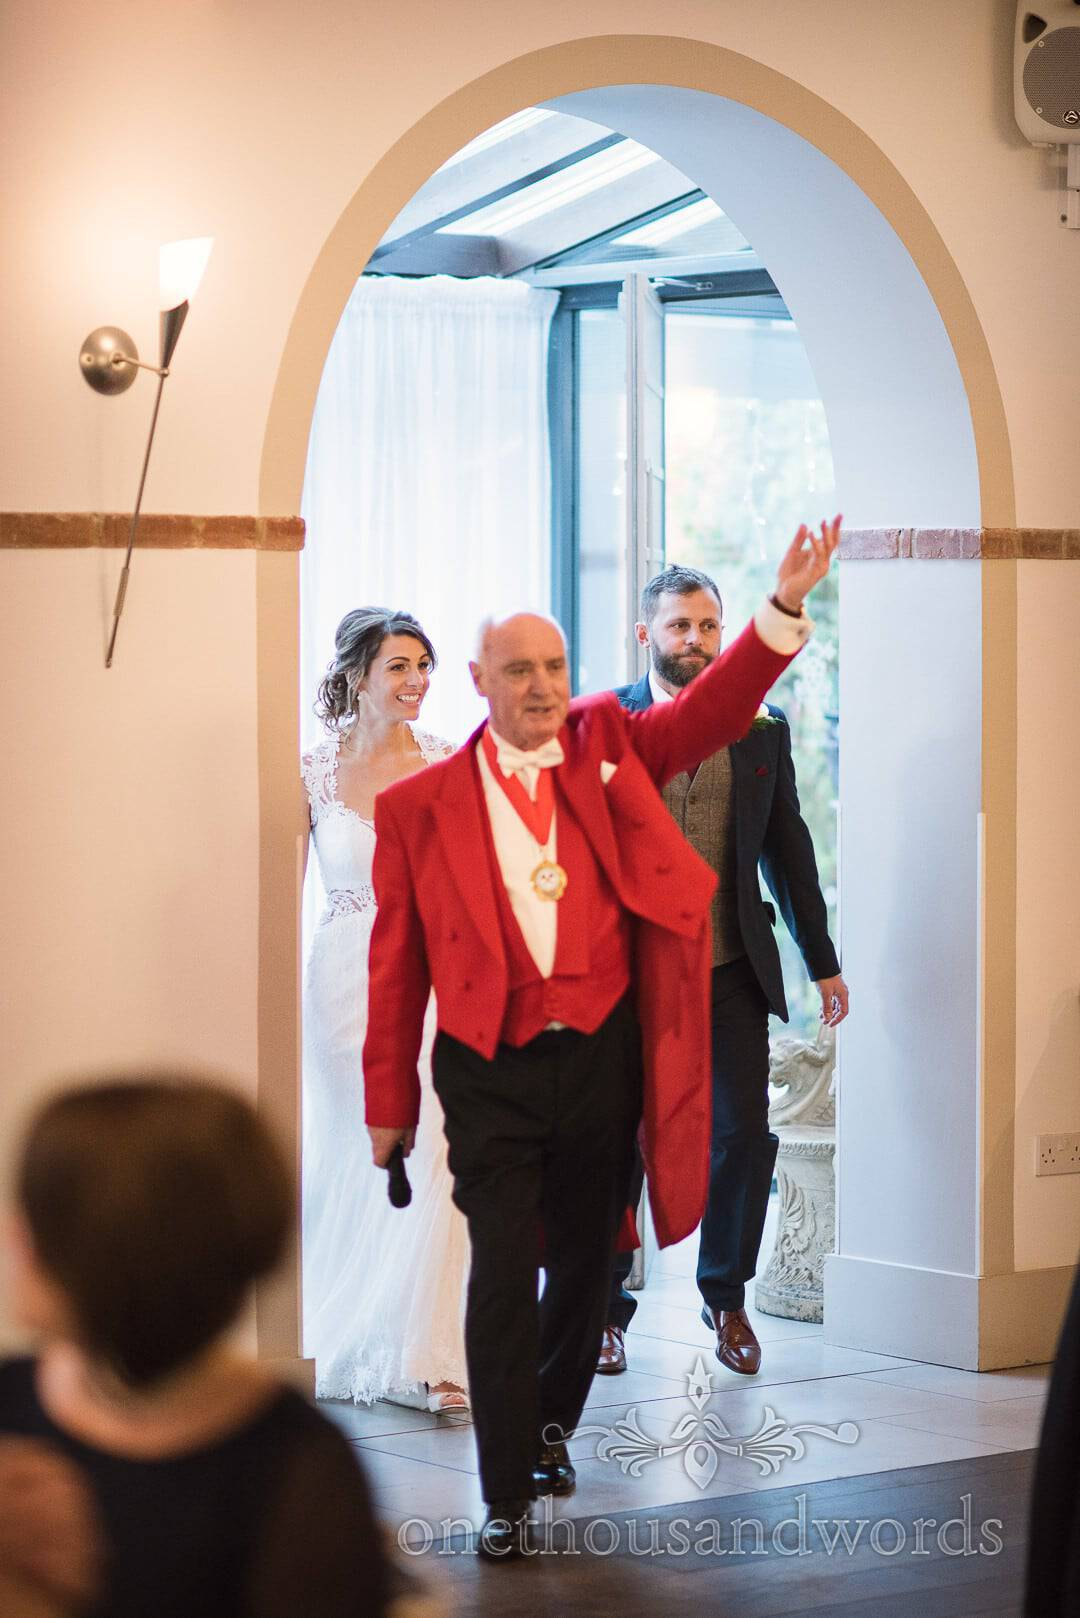 Master of ceremonies asks guests to be upstanding for the entrance of the bride and groom